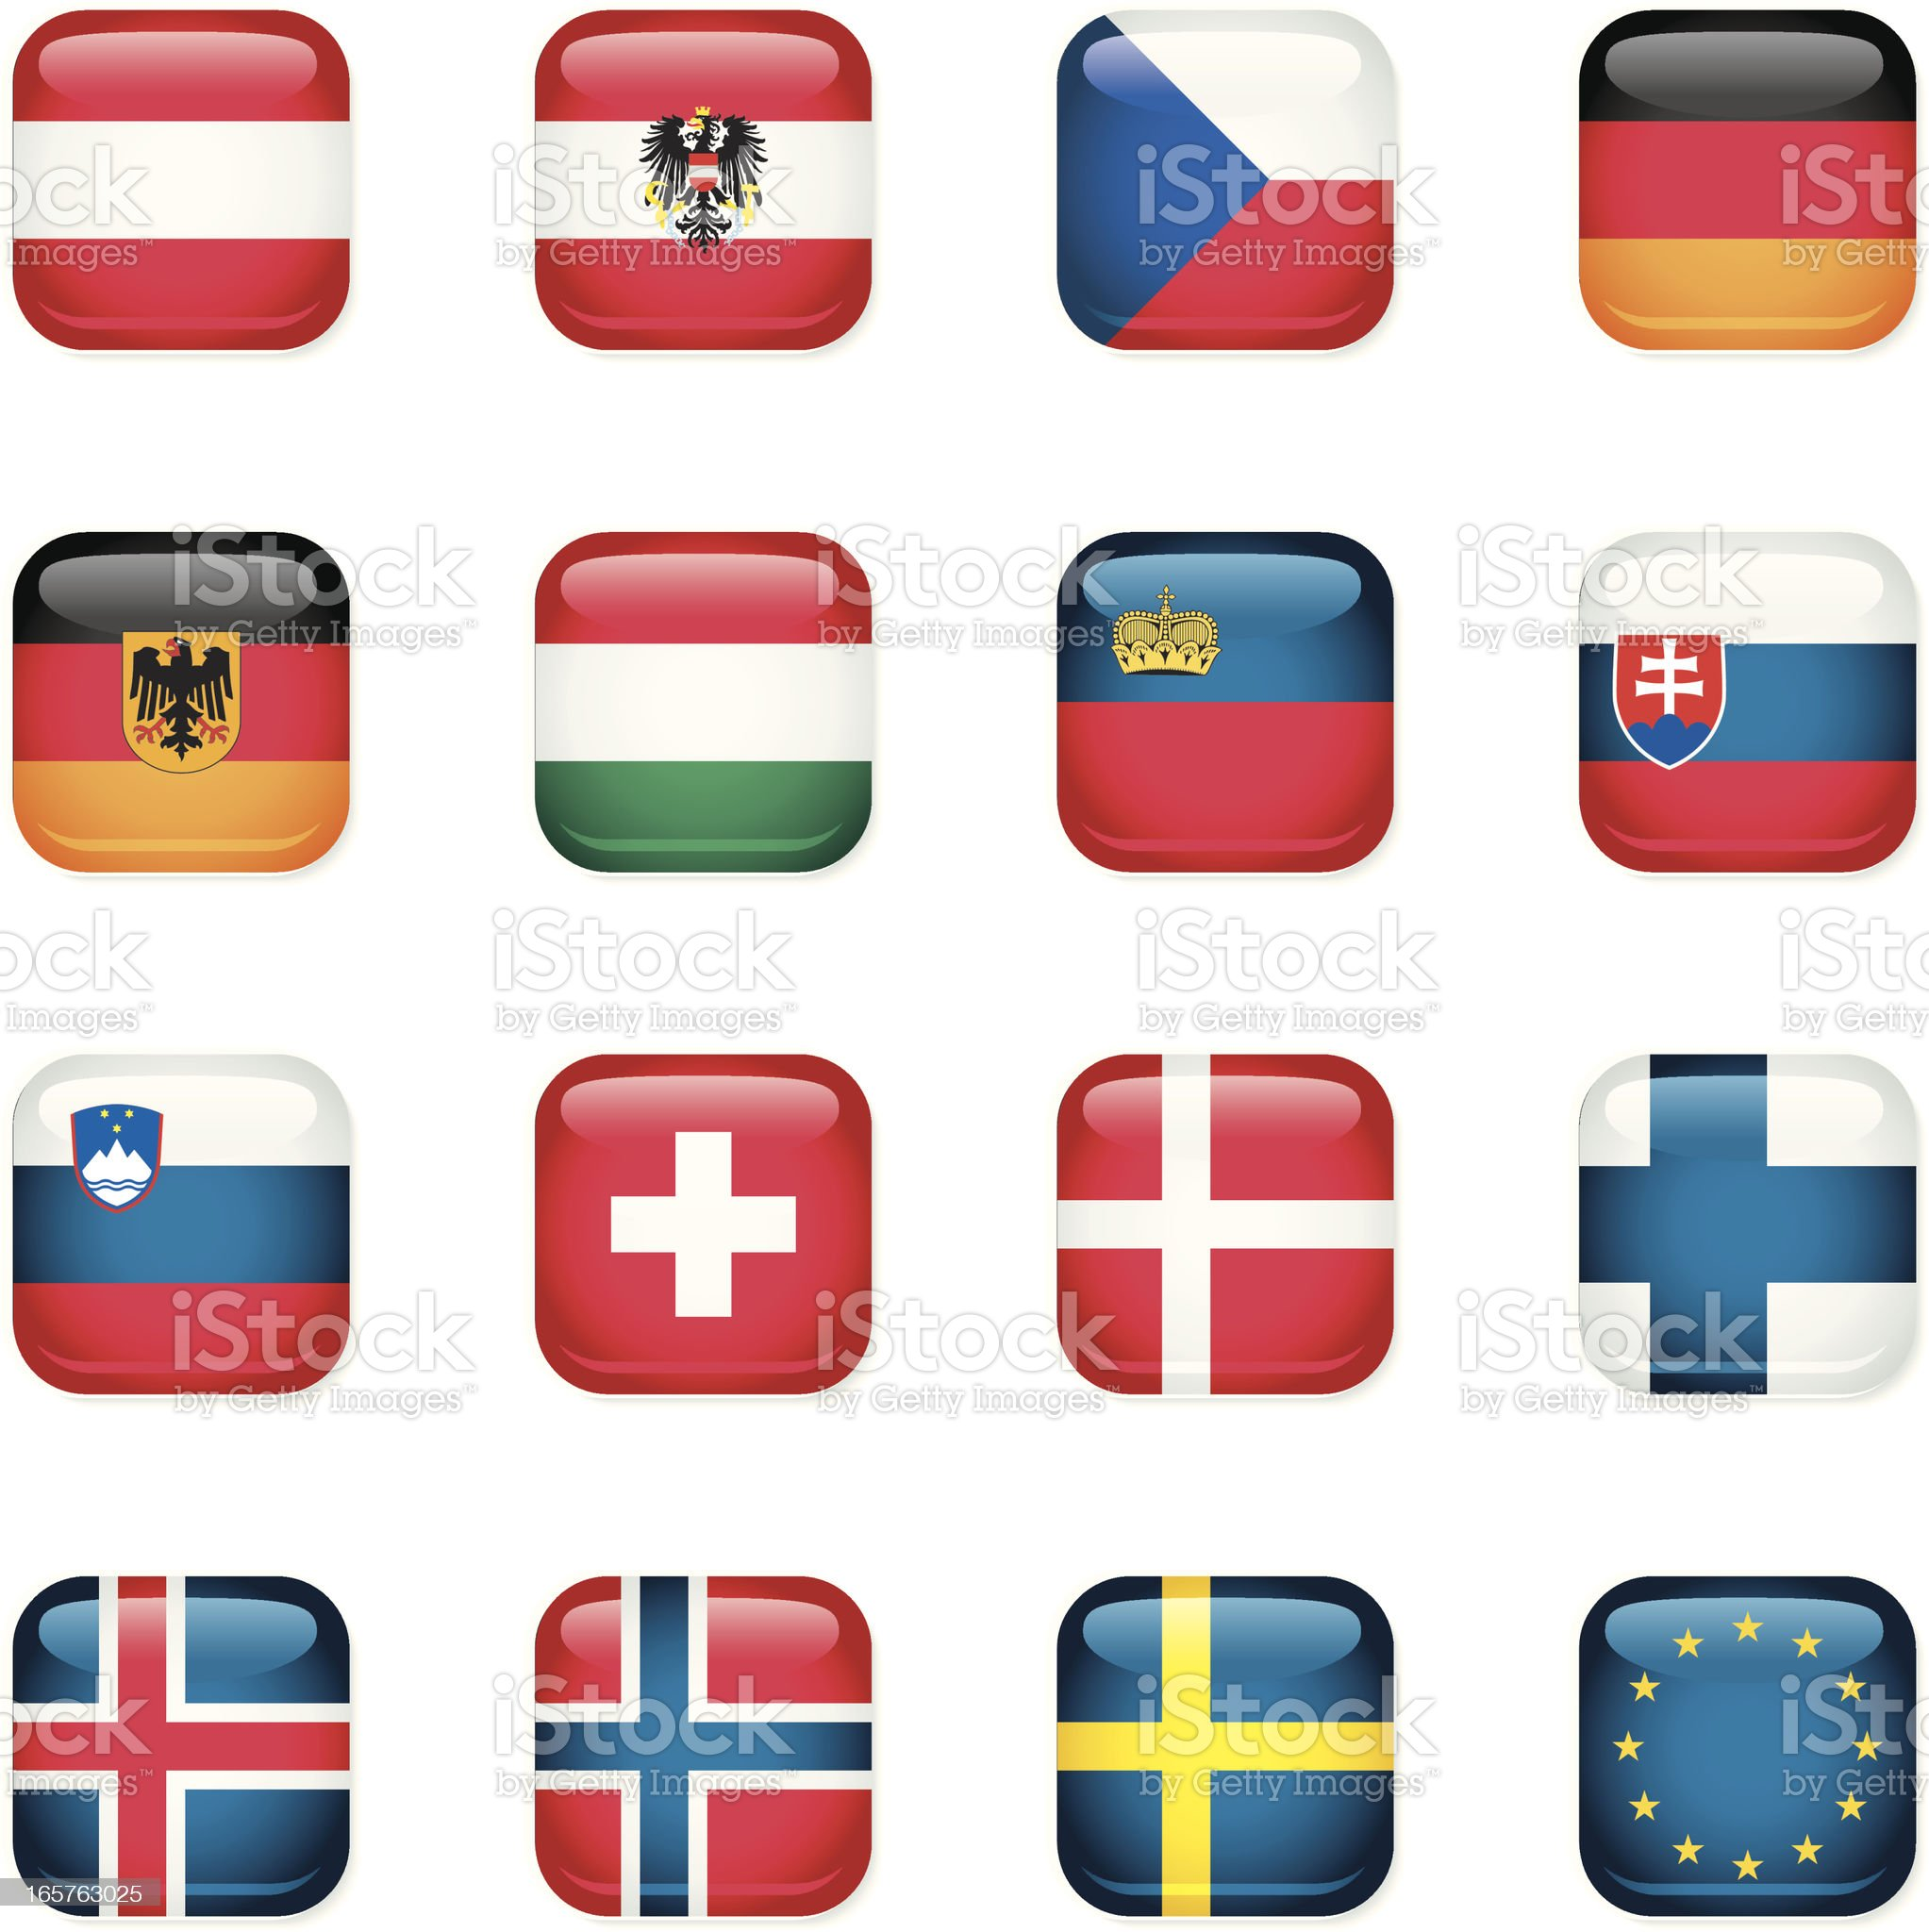 Central and Northern Europe Icon Flags royalty-free stock vector art